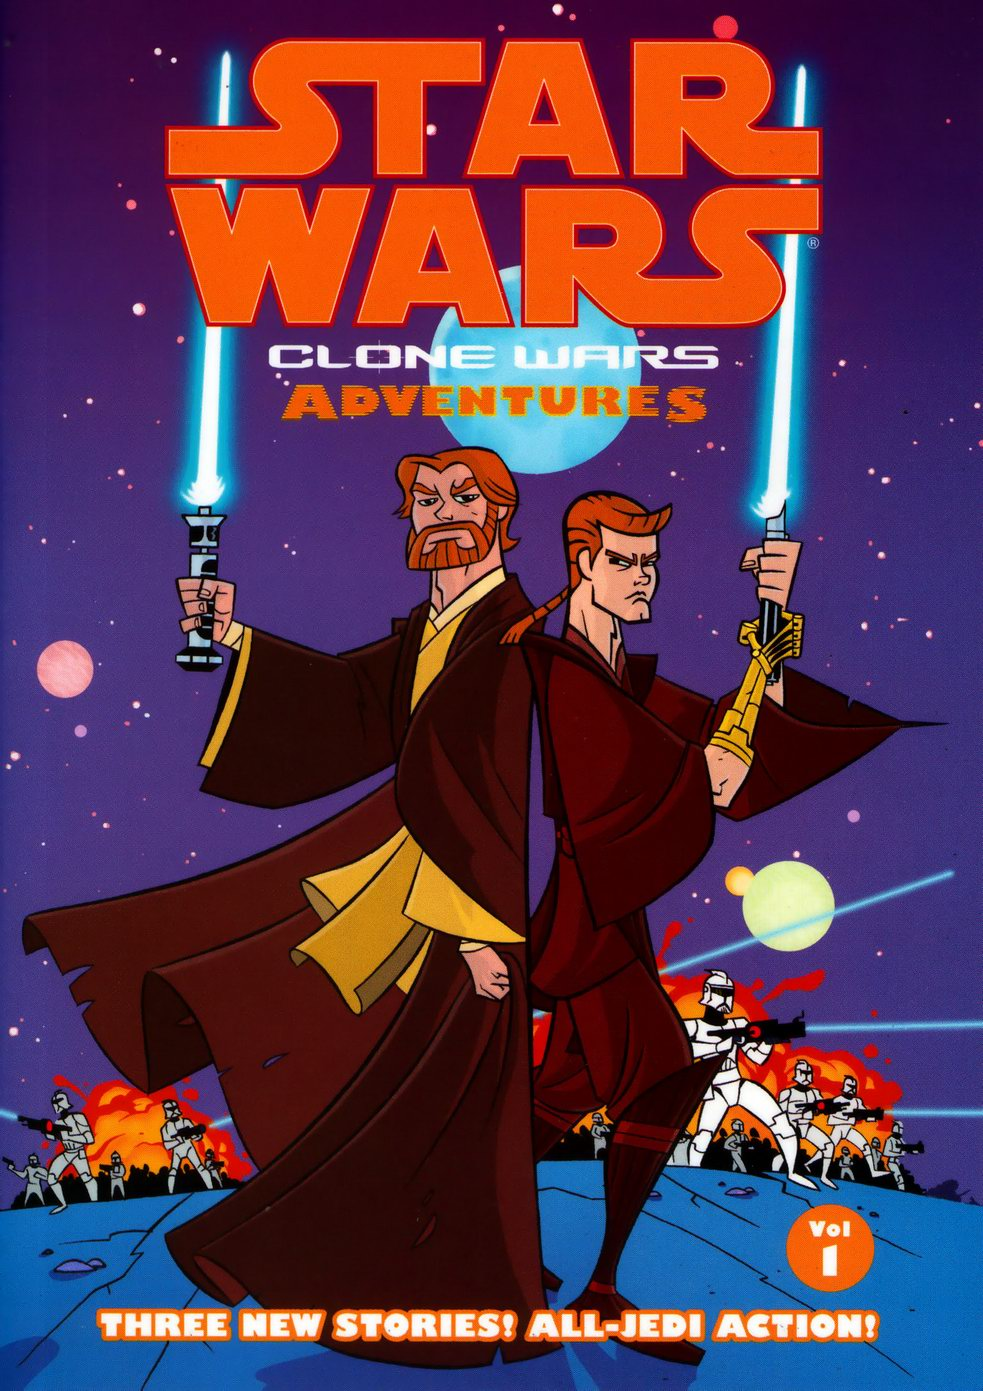 Star Wars Clone Wars Adventures Volume